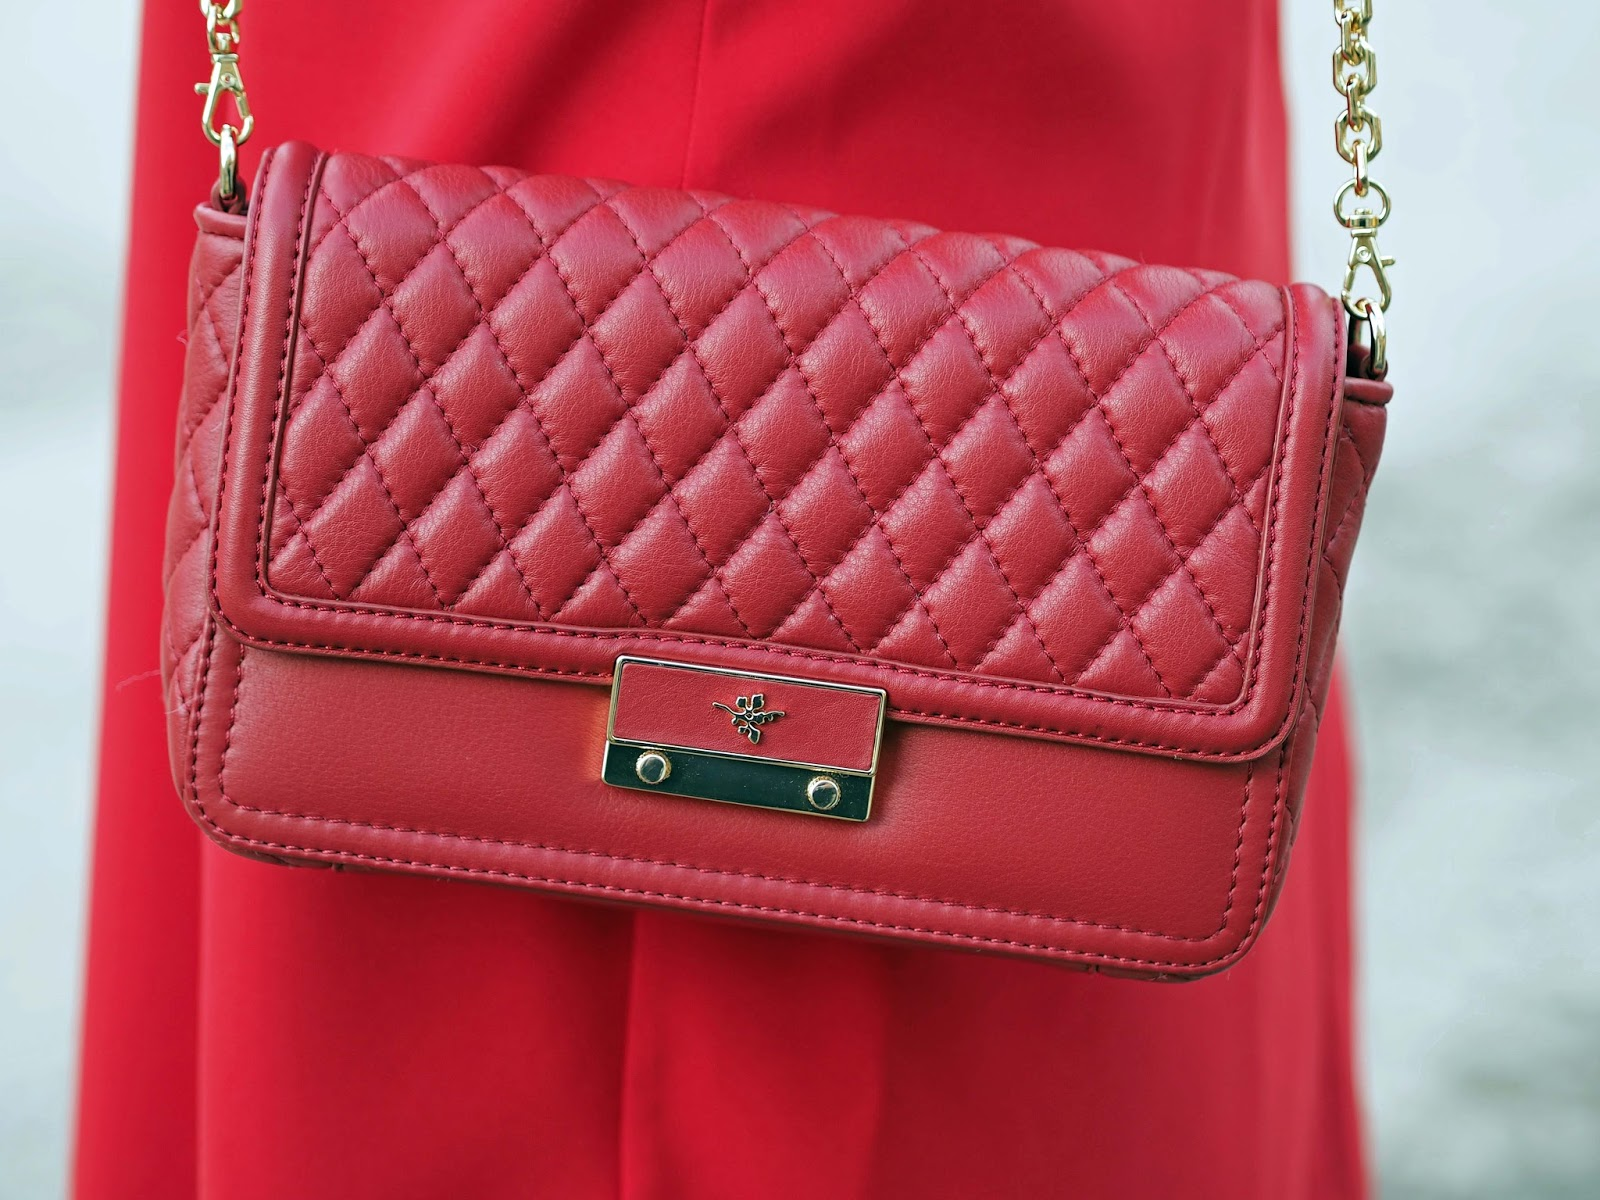 Ilex London red leather quilted cross body bag with gold chain